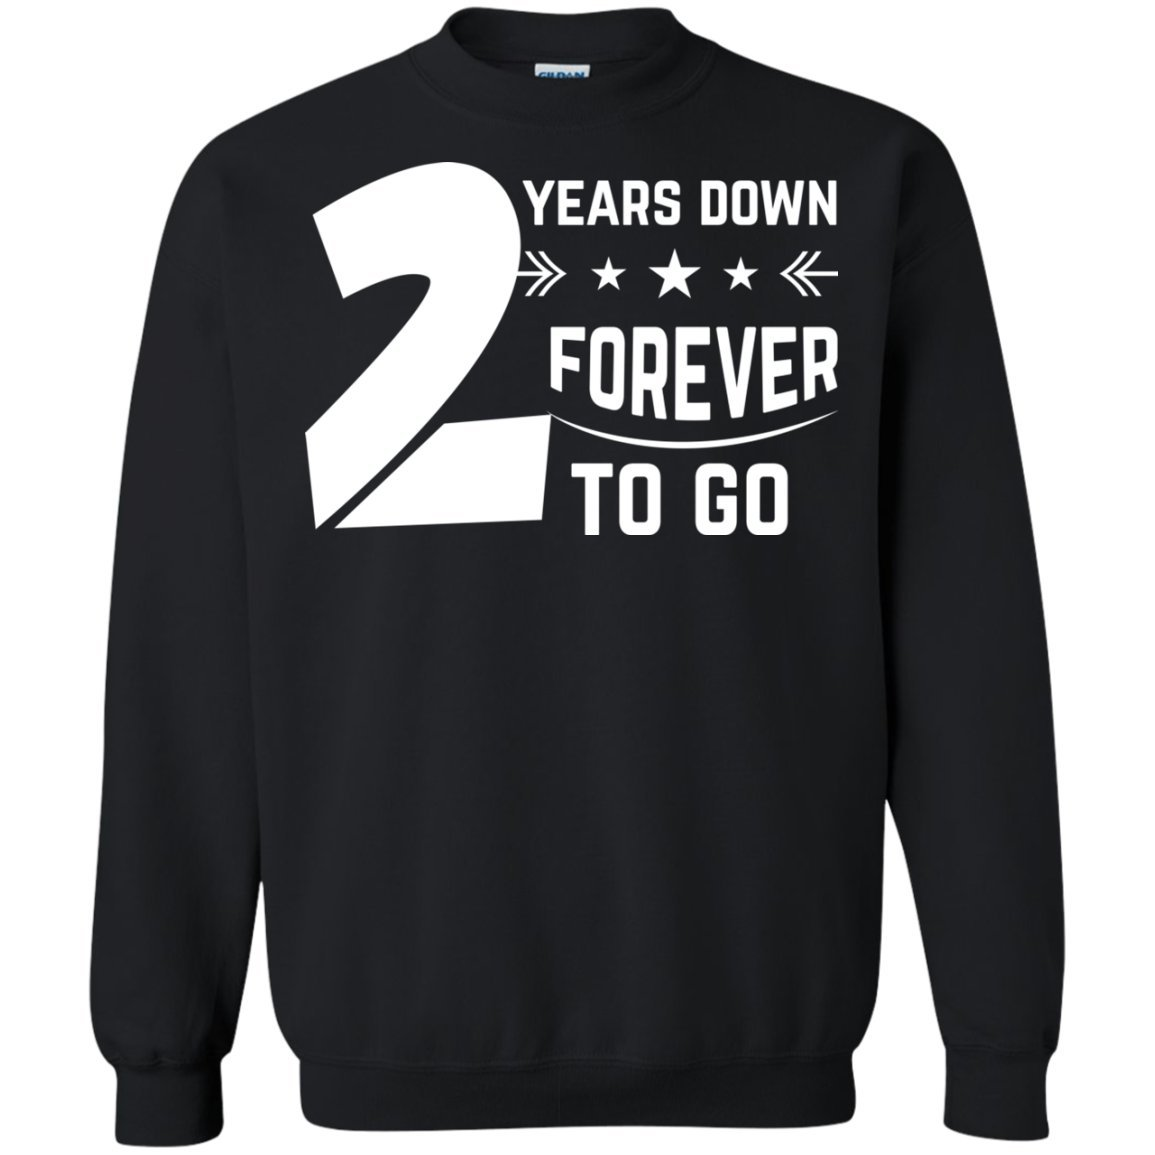 Funny Gift Birthday Awesome Tee 2nd Wedding Anniversary Gift 2 Years Down Forever T-Shirt Sweatshirt